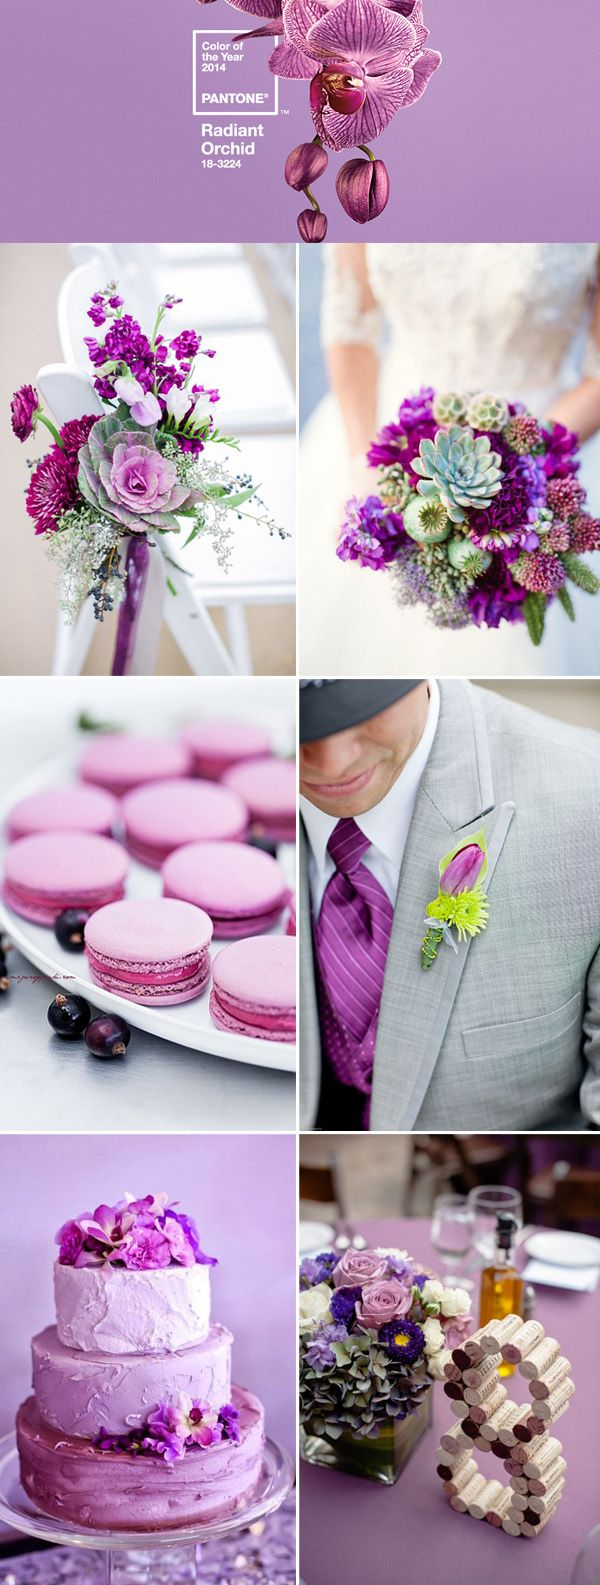 Colour therapy for marriage - The Best Wedding Color Ideas In Recent Years Inspired By Pantone